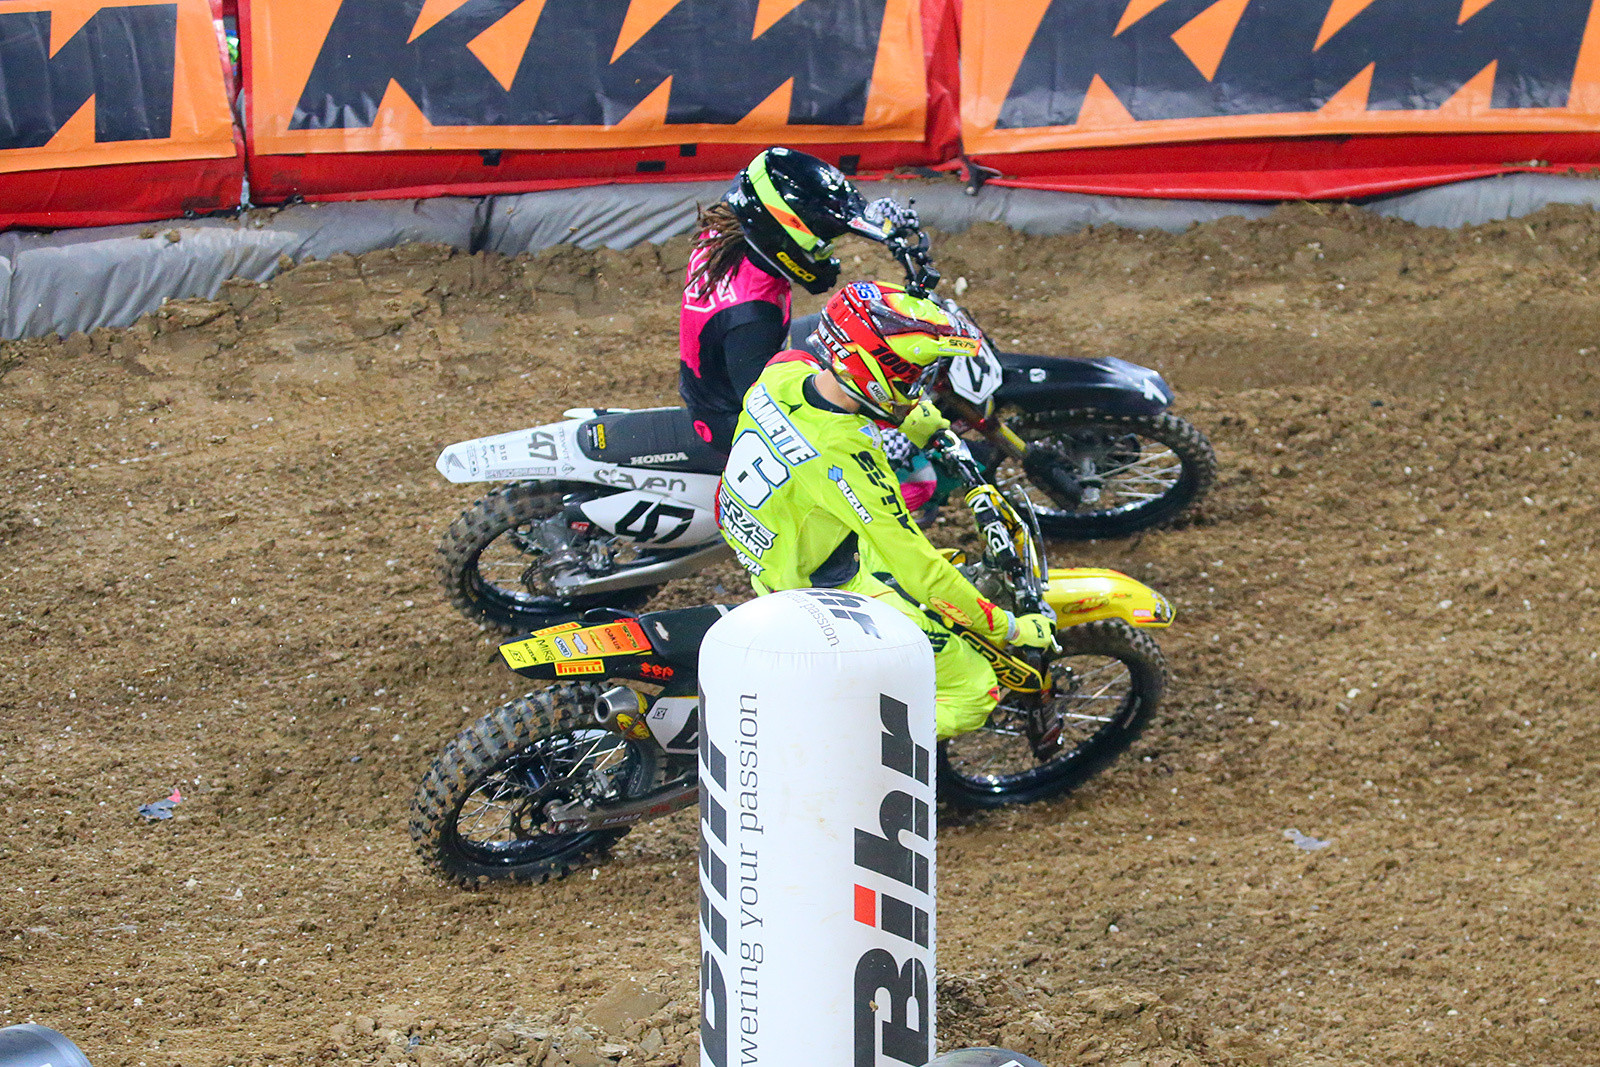 Thomas Ramette and Malcolm Stewart - Photo Gallery: Saturday at the Paris-Lille Supercross - Motocross Pictures - Vital MX